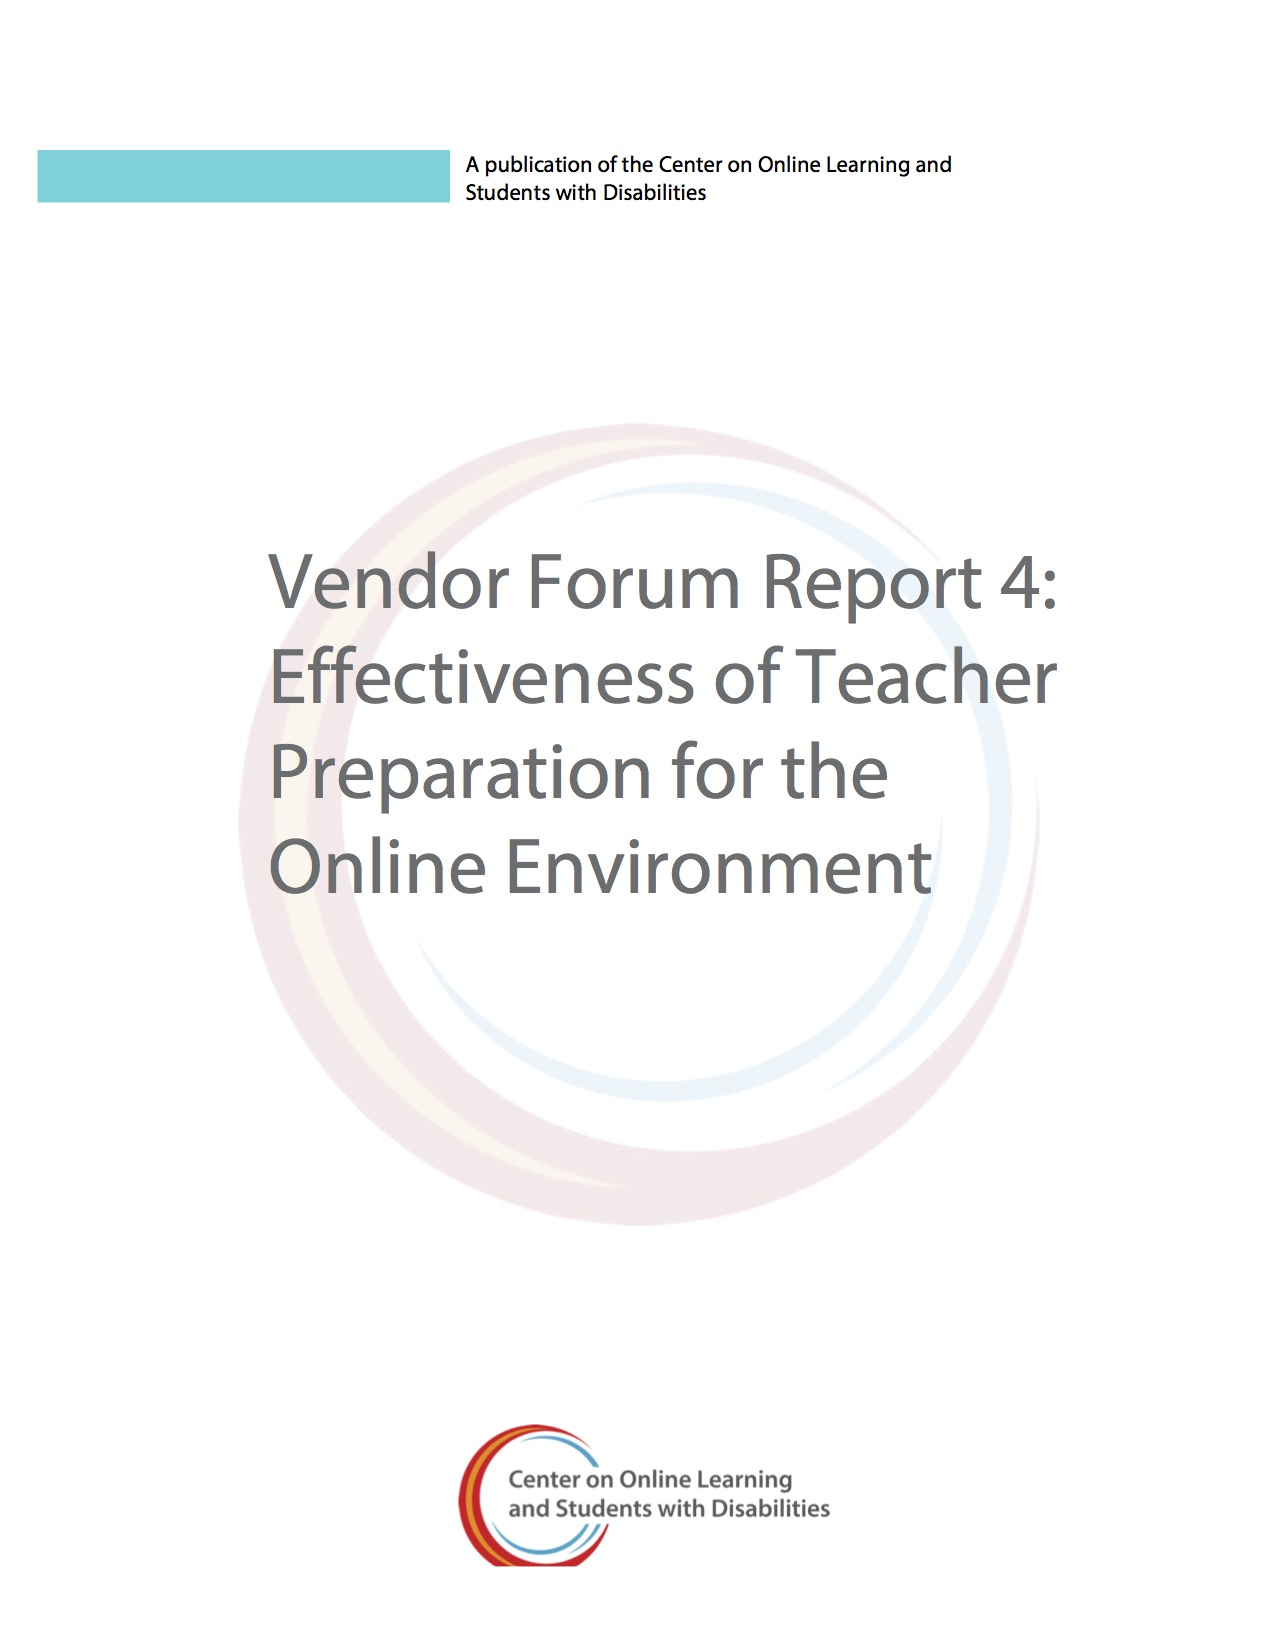 Vendor Forum Report 4: Effectiveness Of Teacher Preparation For The Online Environment